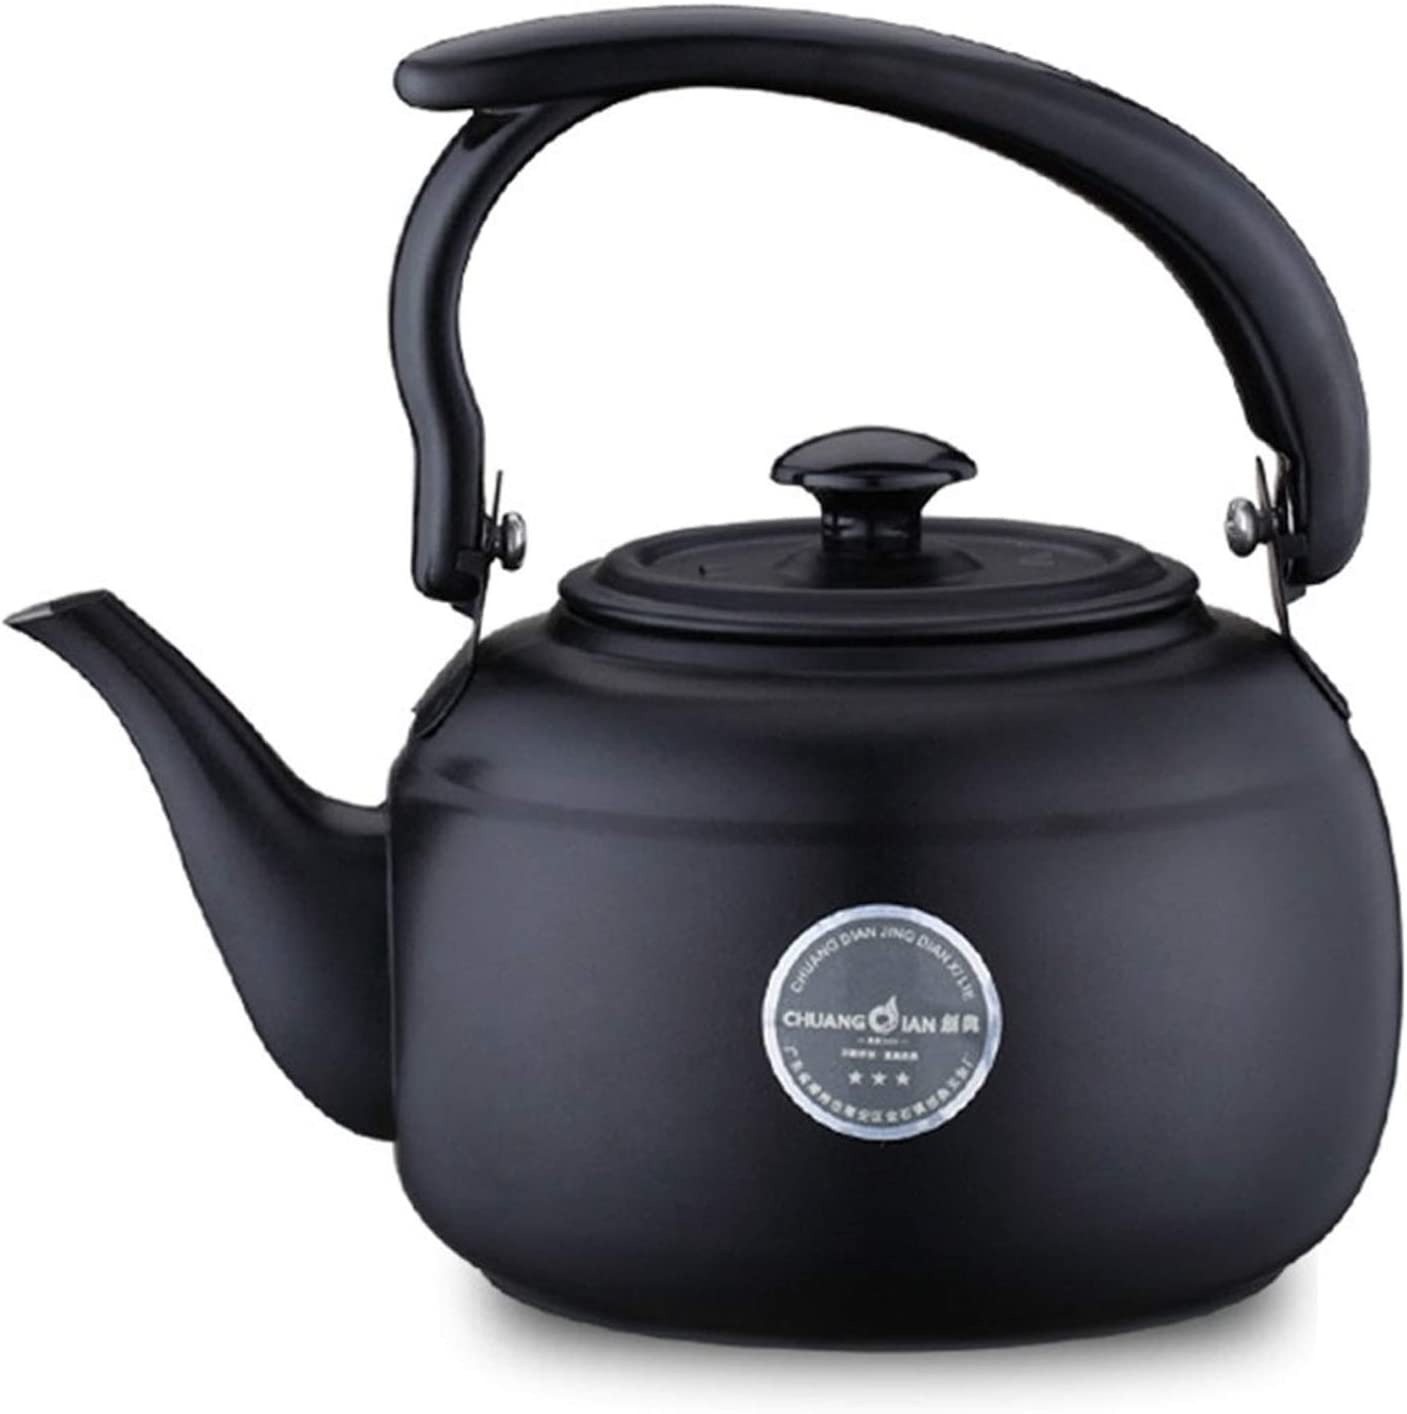 stainless steel tea kettle for stove Limited Special Price Stainless Black top Stee 1l Ultra-Cheap Deals